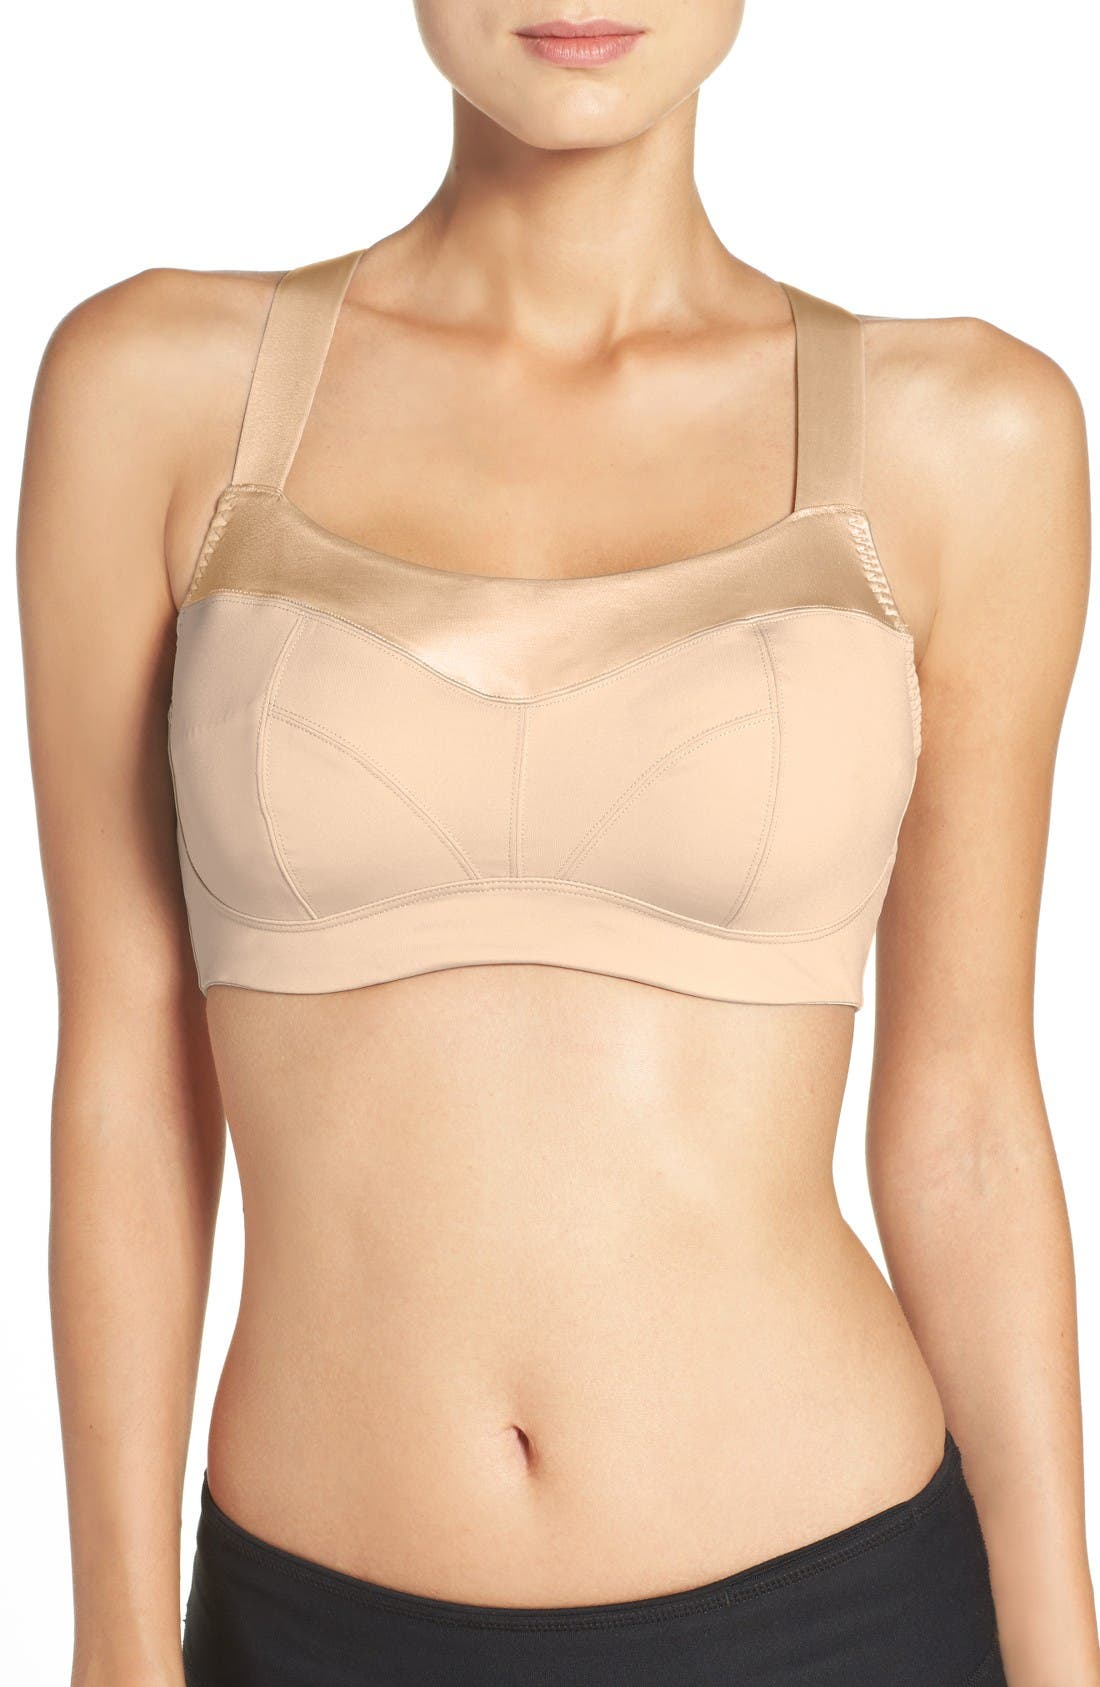 Embody Underwire Sports Bra,                             Main thumbnail 1, color,                             Latte